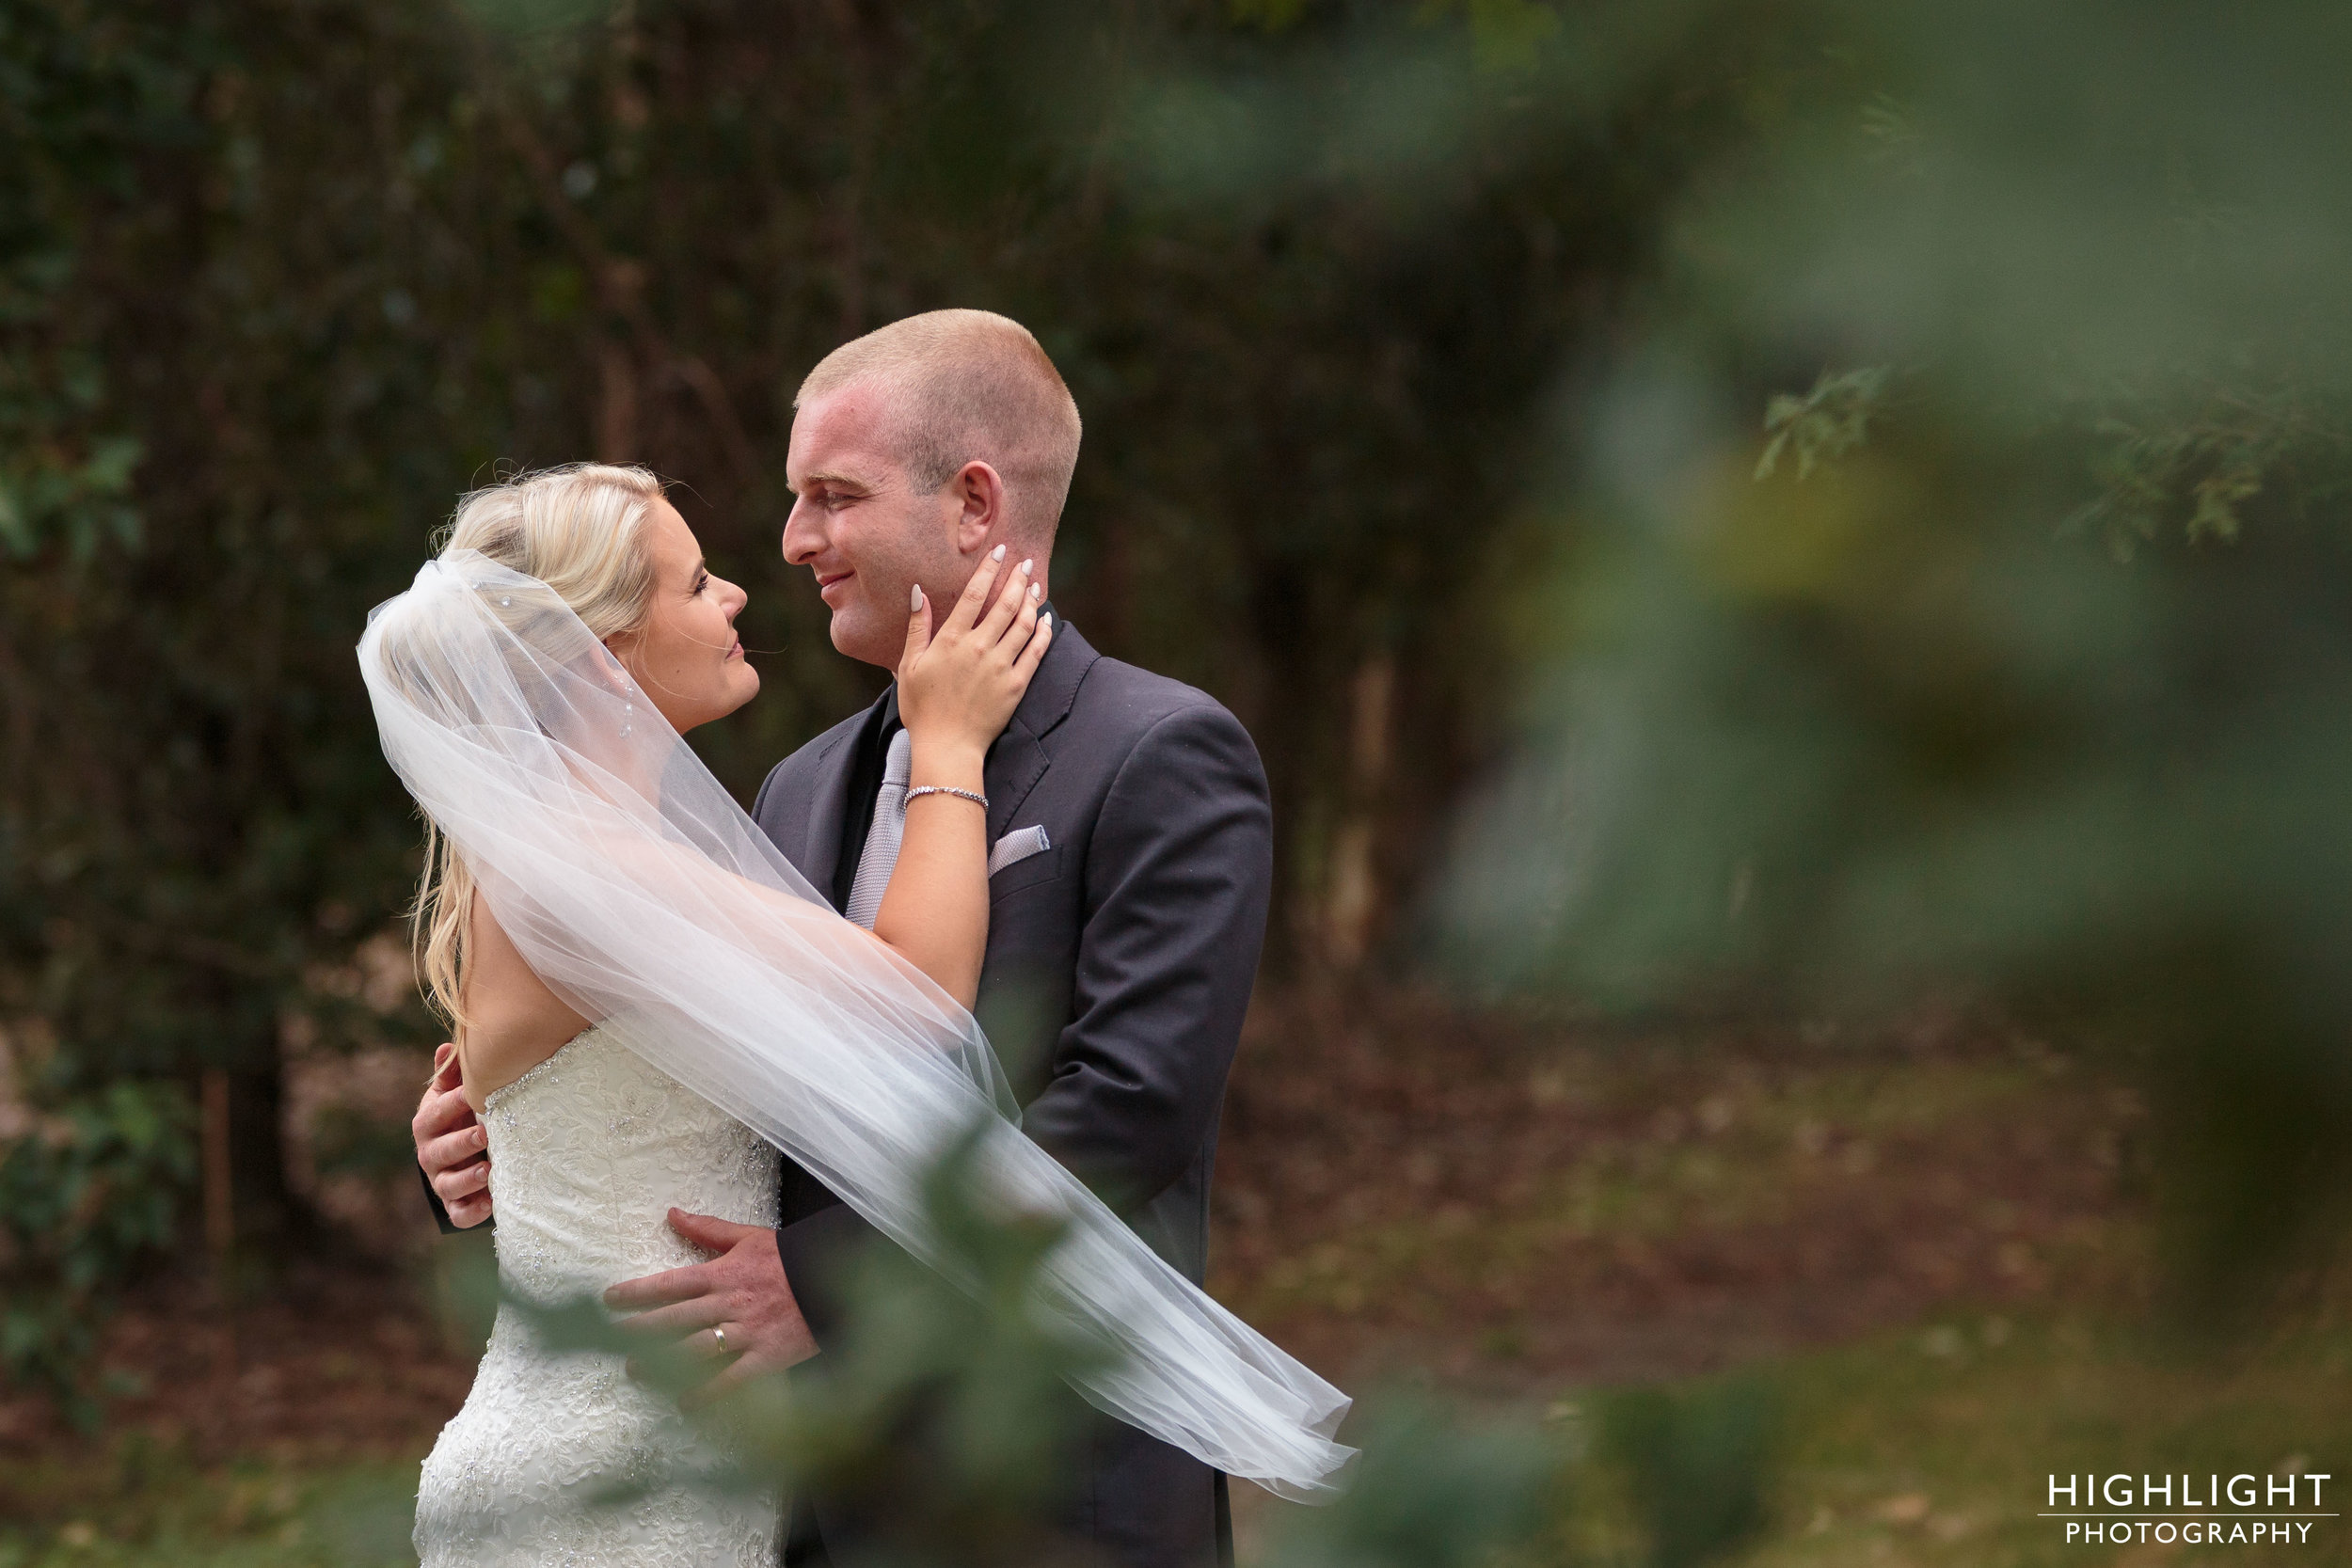 highlight-wedding-photography-new-zealand-cs-orlando-country-wedding-palmerston-north-146.jpg